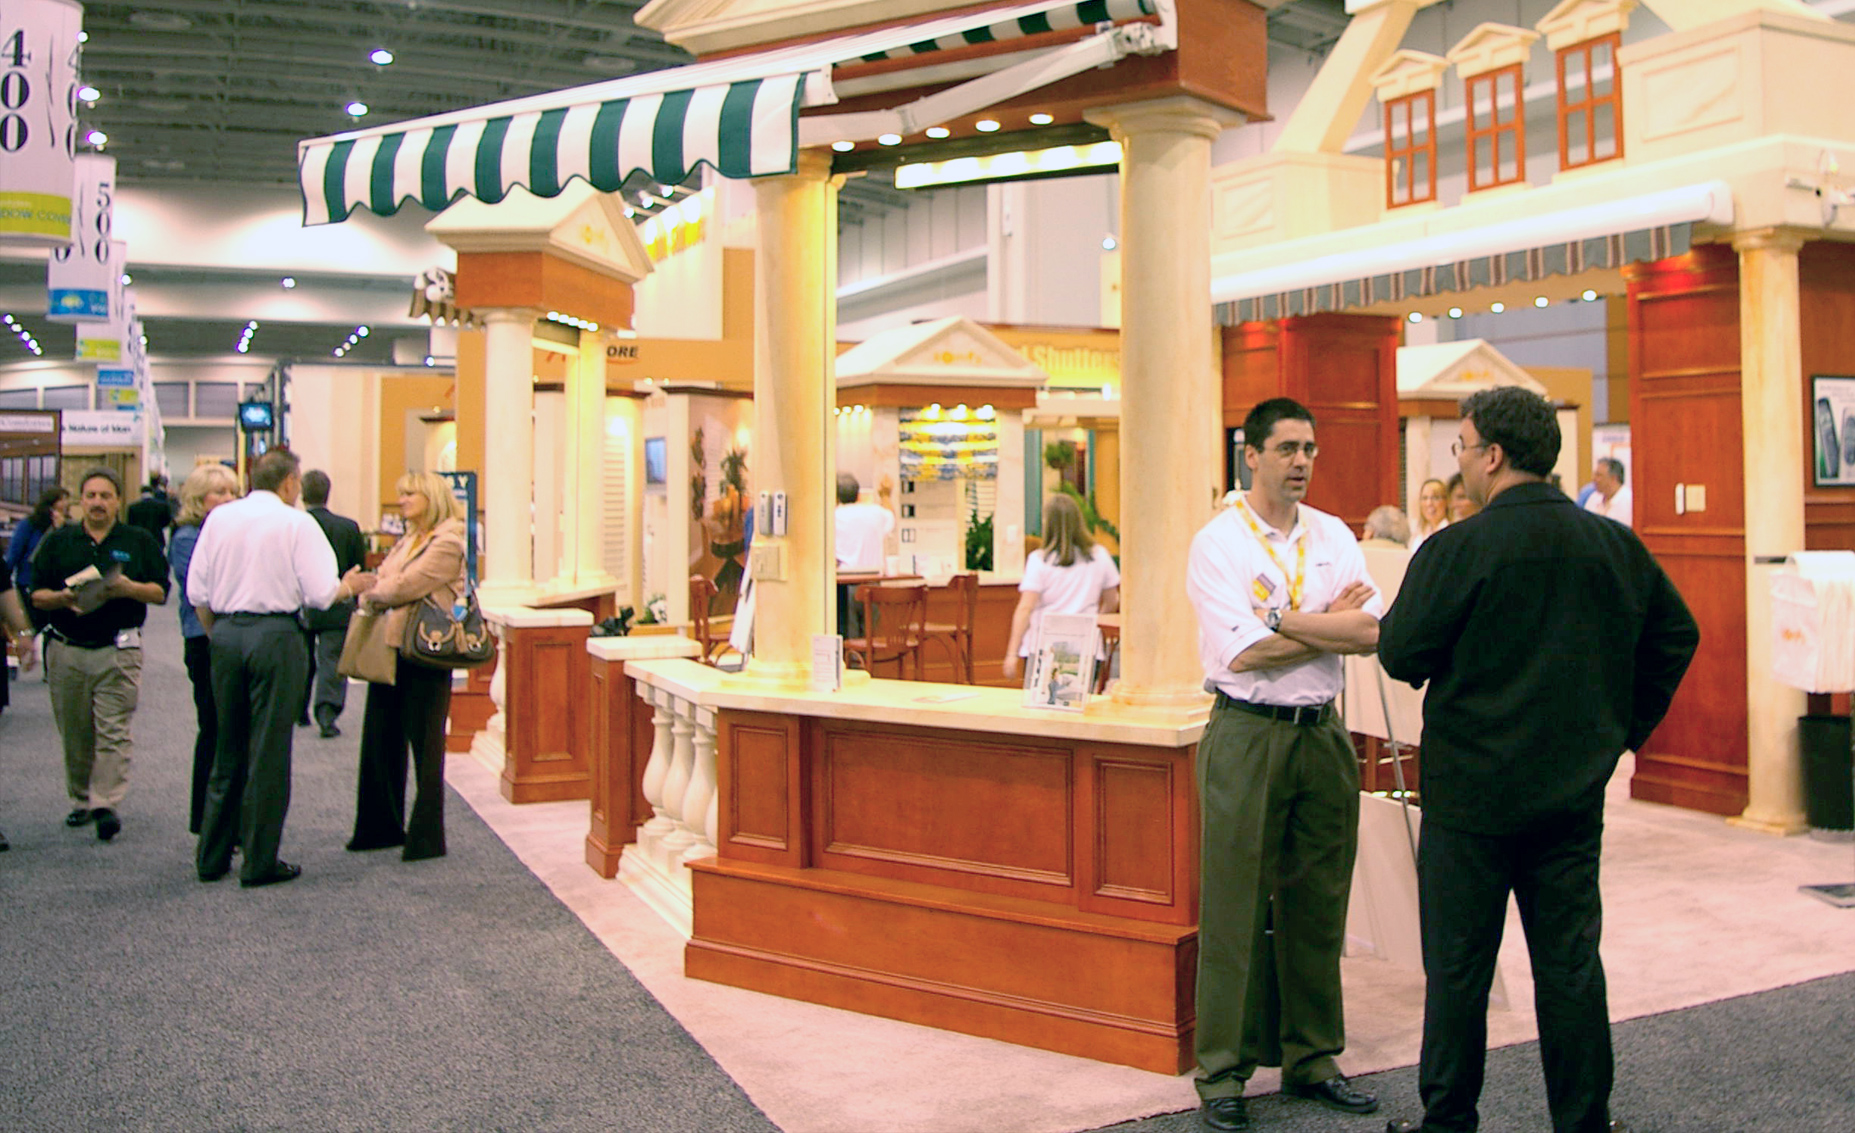 You invested thousands of dollars to build an amazing trade show presence, and put together a great team to work at your booth. Now what? These seven tips will help ensure your company's investment is set up for success.